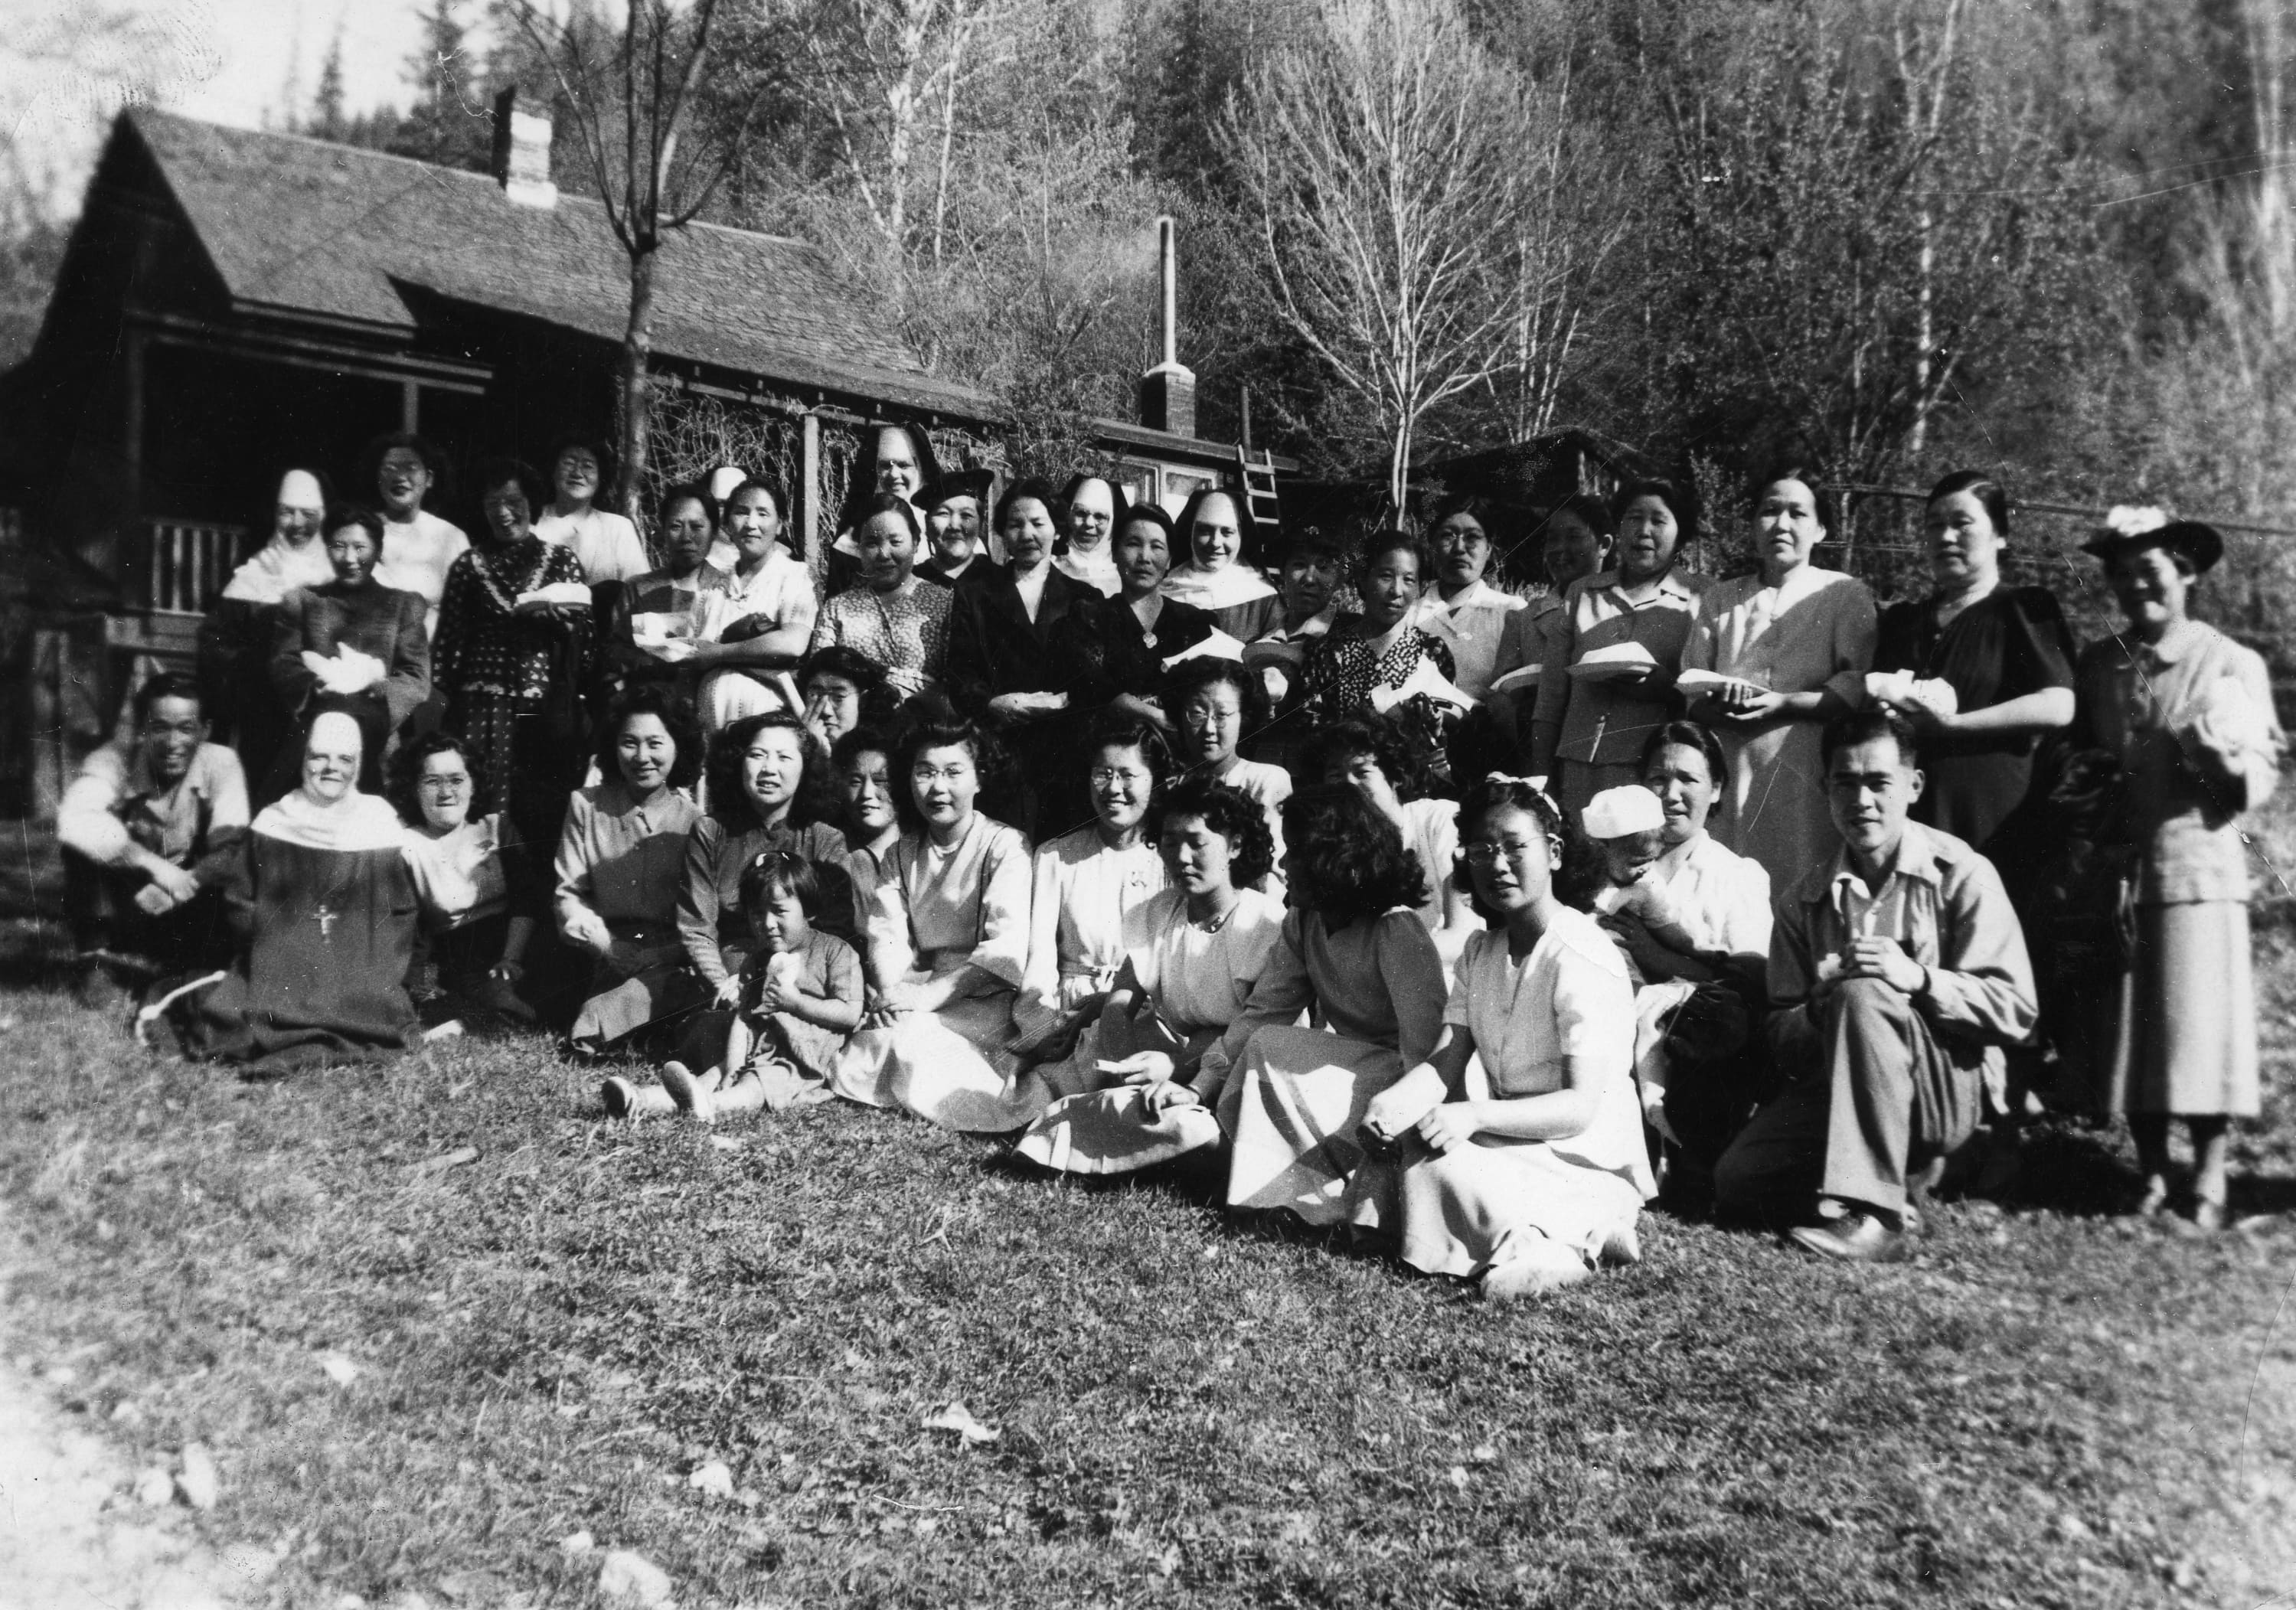 This historical photo depicts Nikkei youths, women, and men, along with Catholic Sisters in Greenwood, British Columbia.